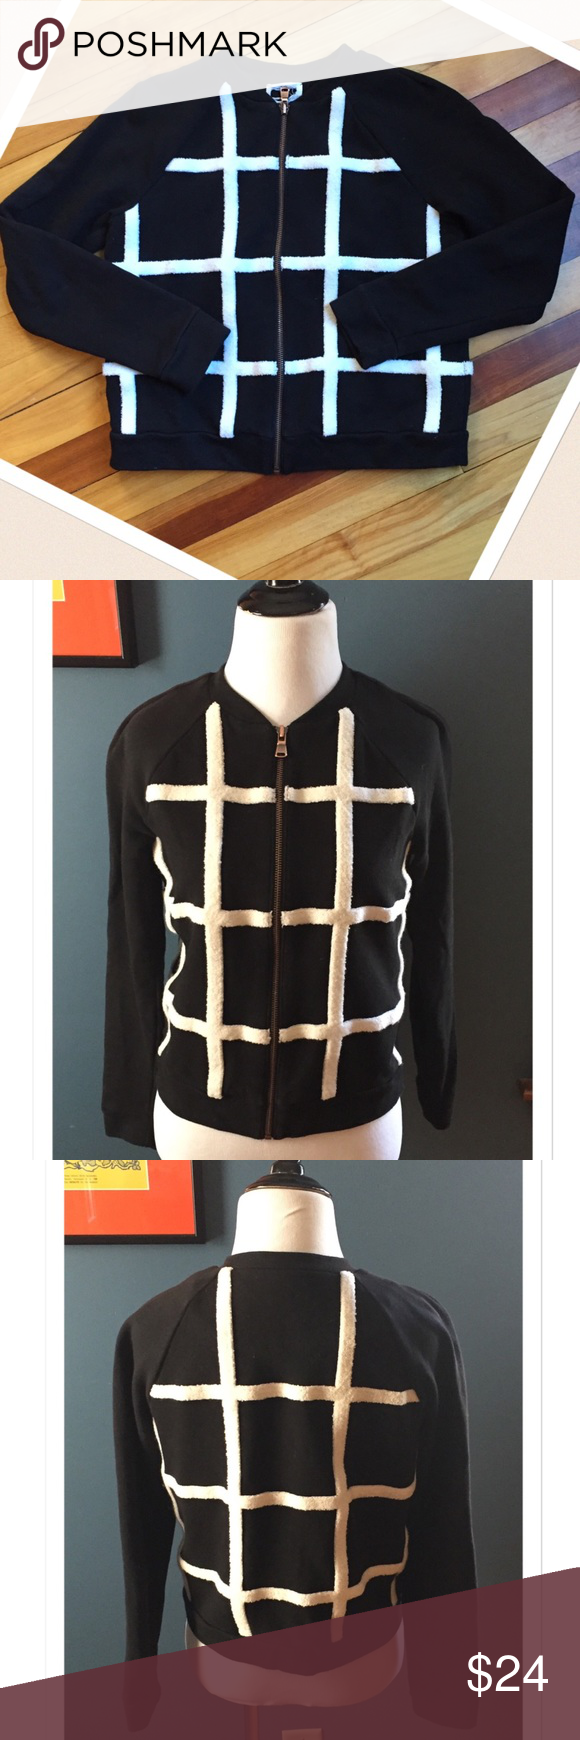 "Black and White Cotton Grid Coat Very cool grid jacket in 100% cotton. Featuring a zipper front, this jacket measures as a size small but tag has been removed. Bust 18"" across; Length 20"". EUC Jackets & Coats"